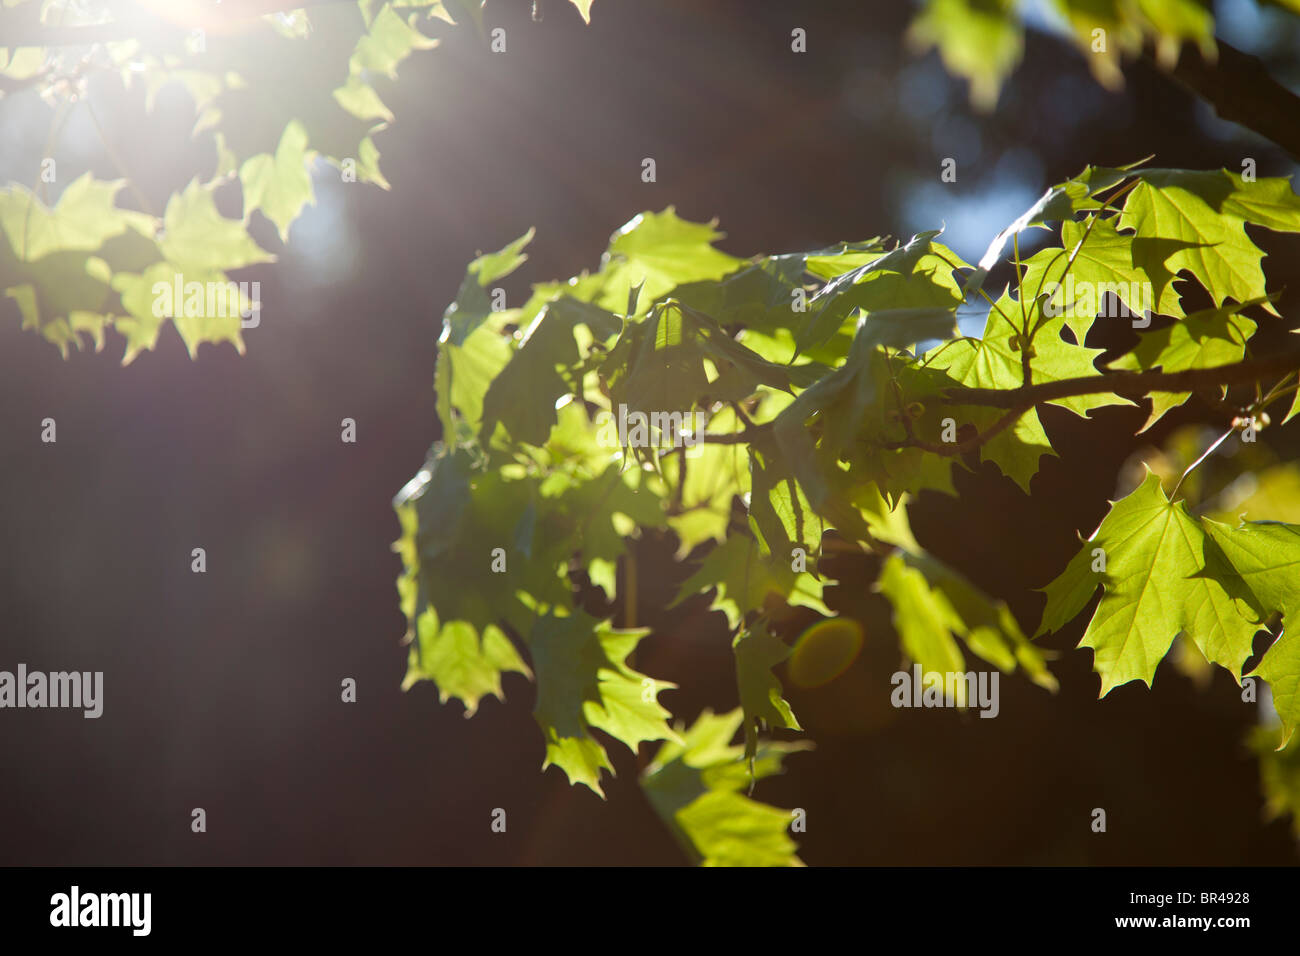 Green maple leafs against sun - Stock Image